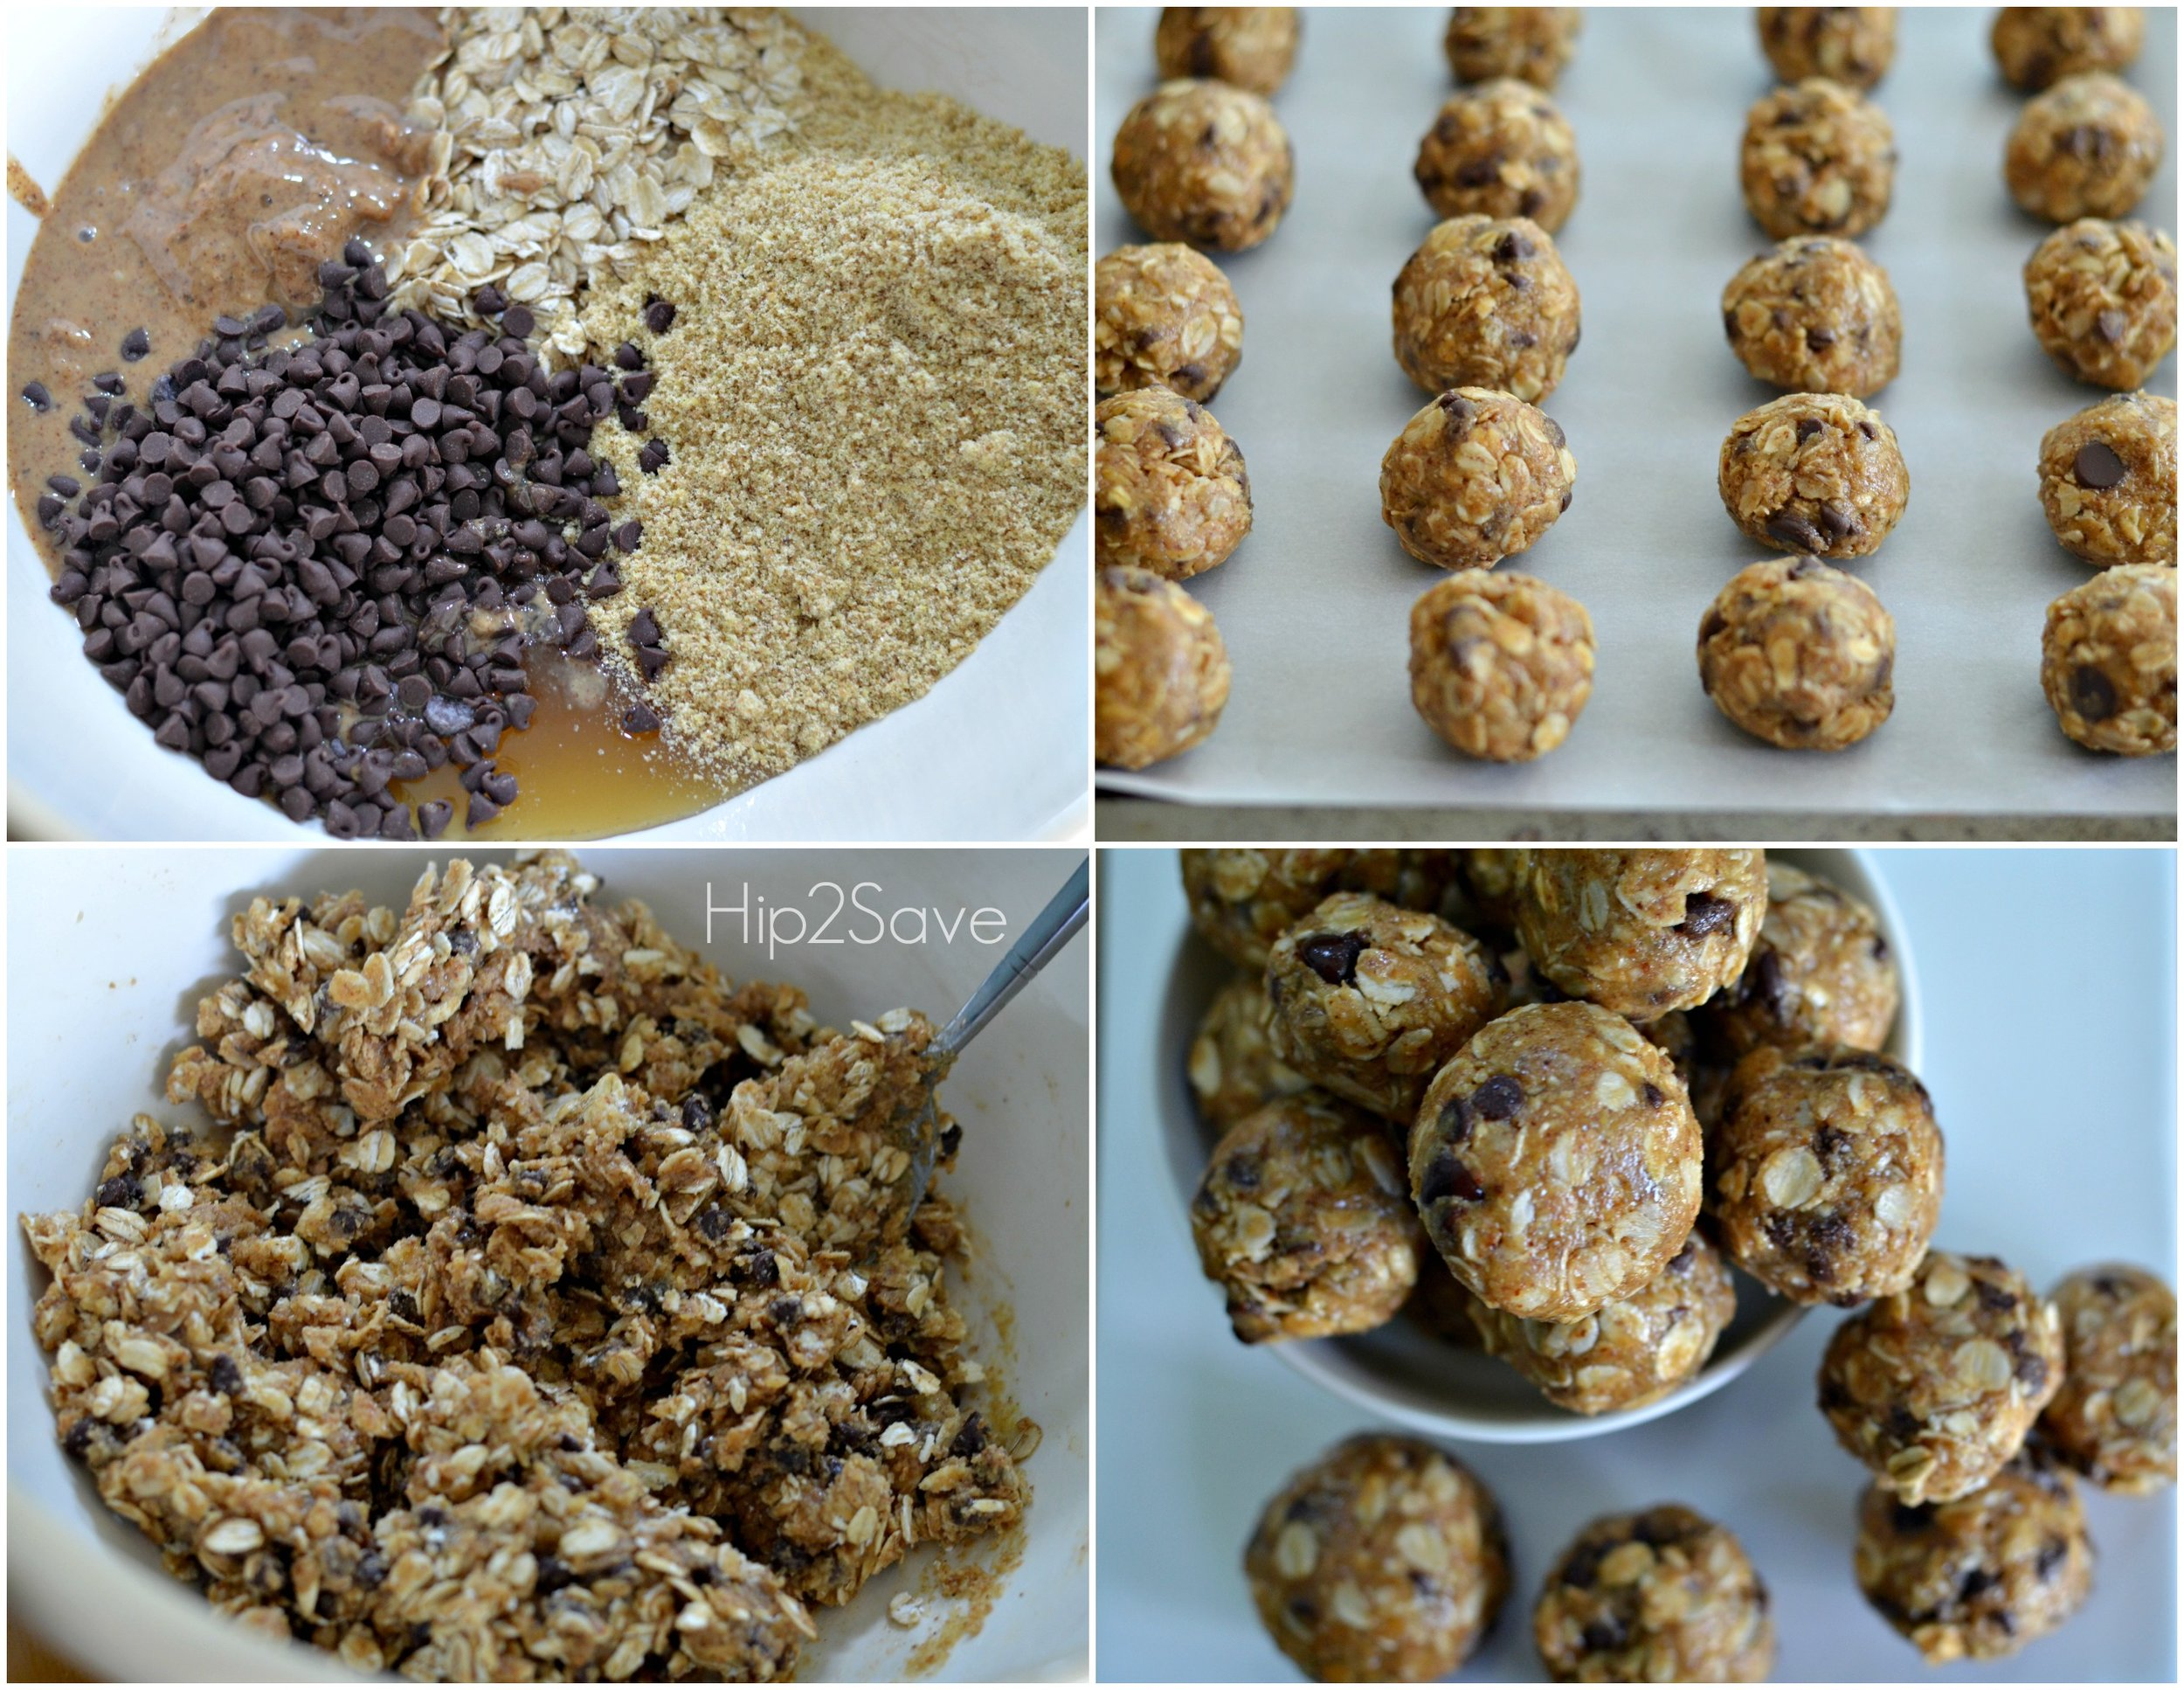 easy-healthy-oatmeal-energy-bites-no-bake-recipe-from-hip2save.jpg